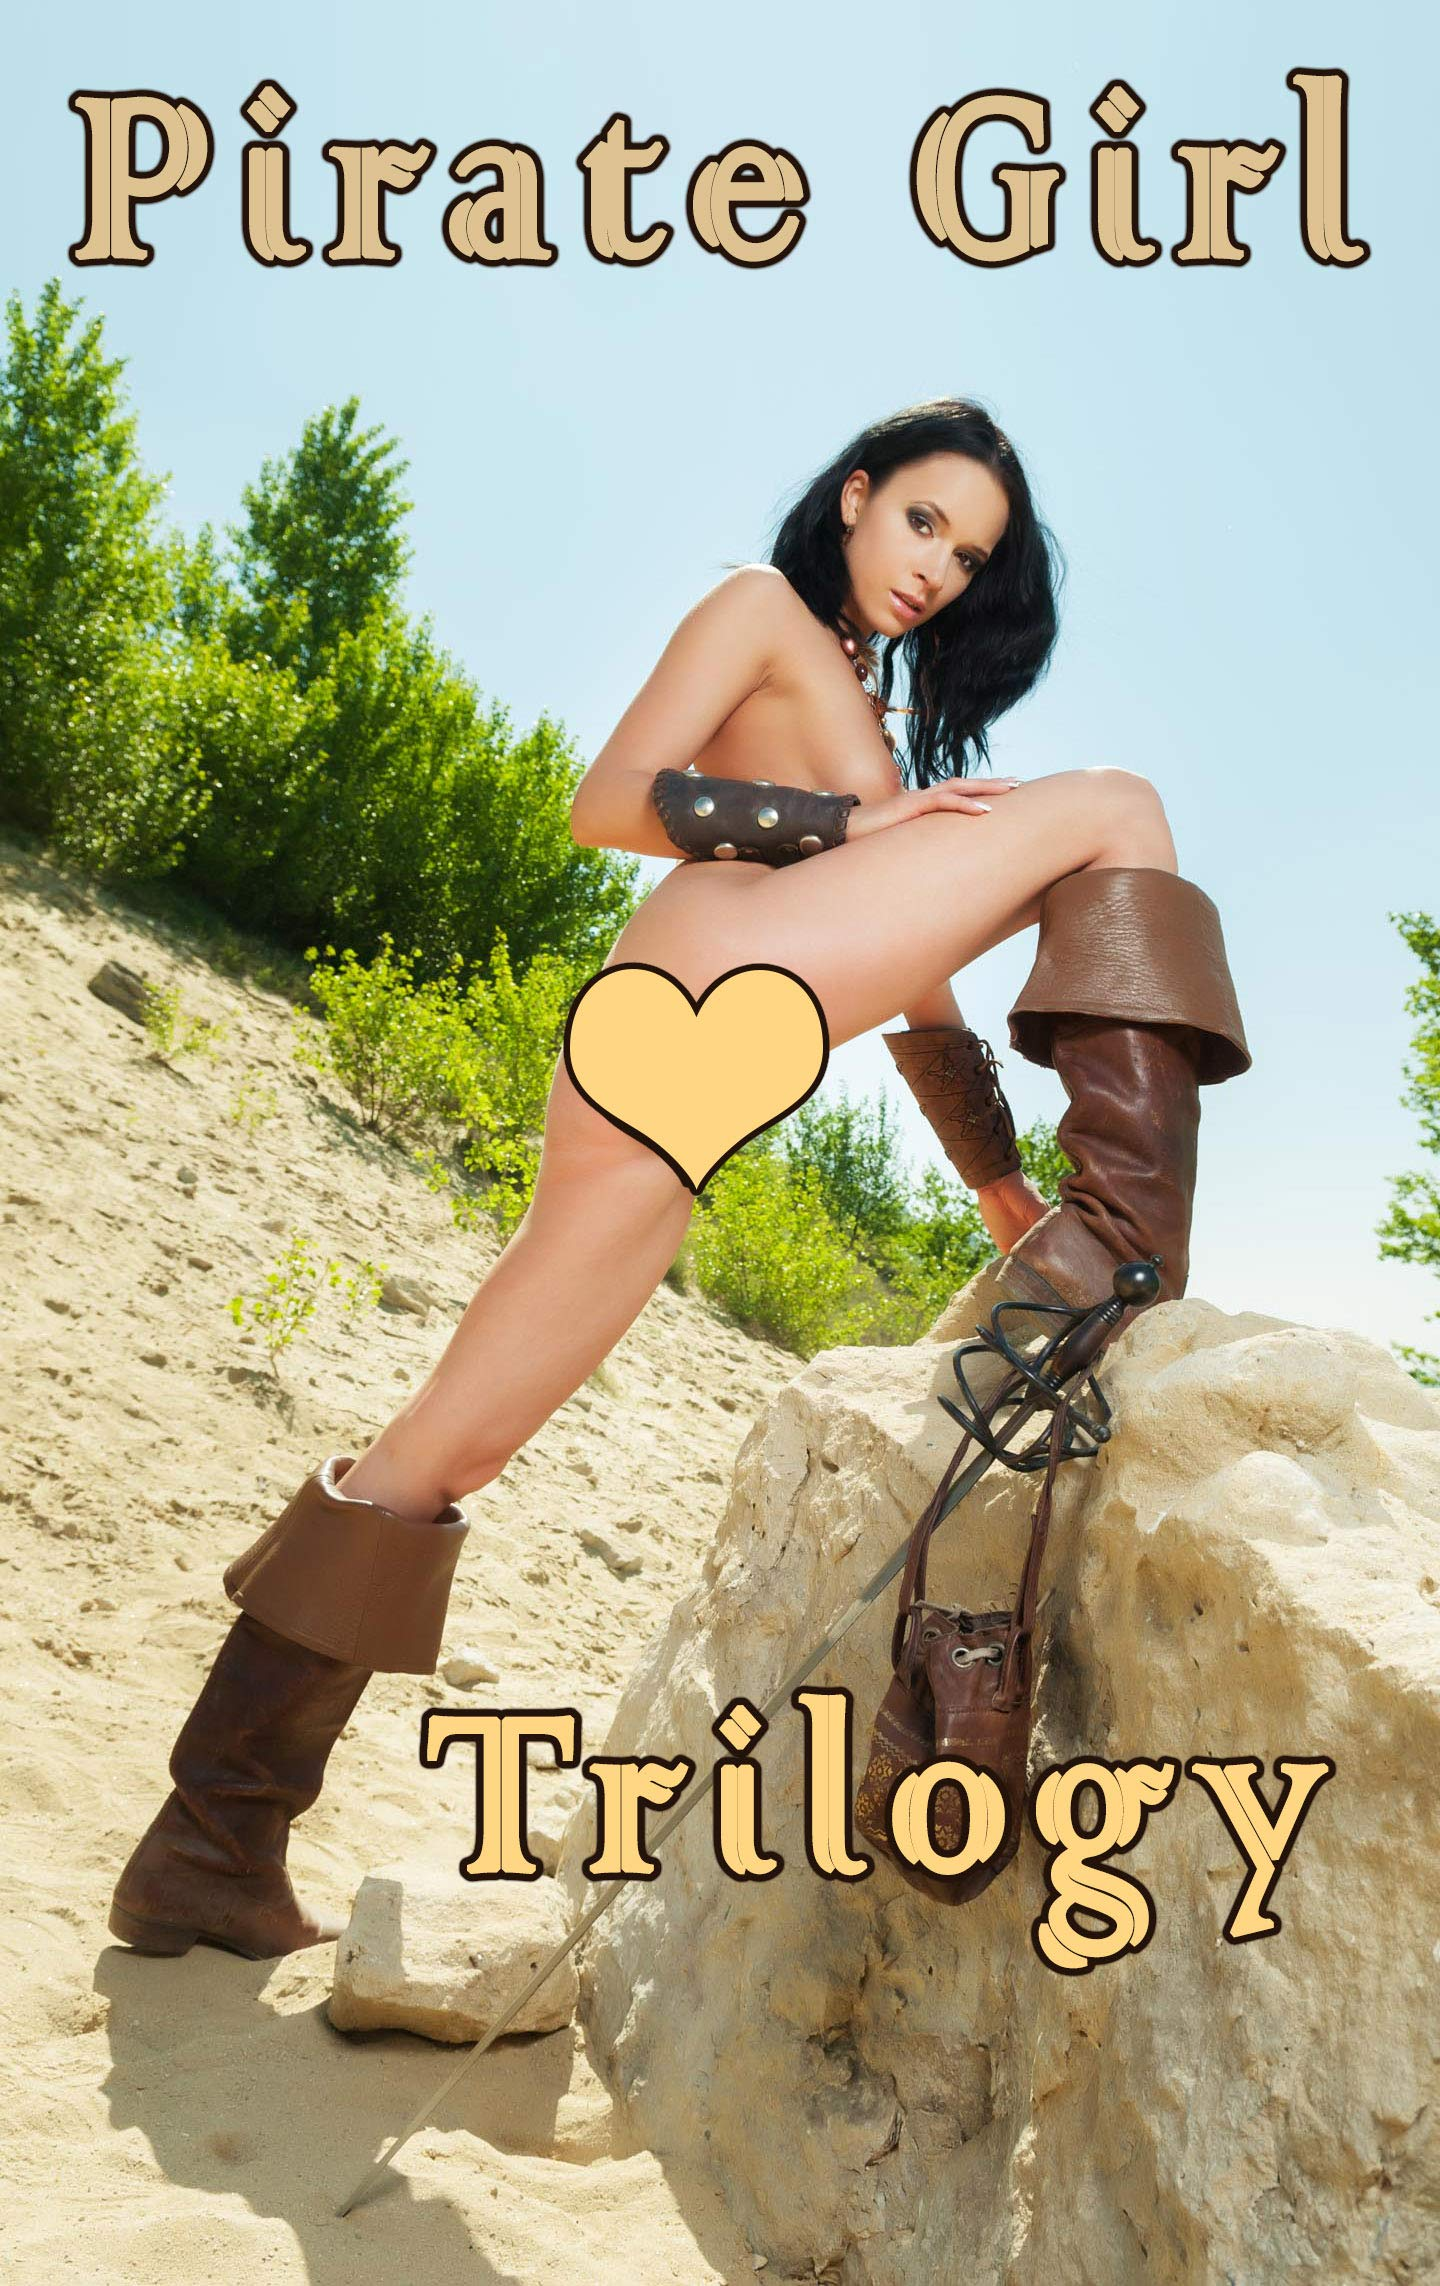 Pirate Girl - TRILOGY (XXX Fantasy Erotic Picture Book): Sexy Pirate Beauty showing off all her treasures in this amazing trilogy! Uncensored young adult ... striptease photos in HD. por Perry Verzor